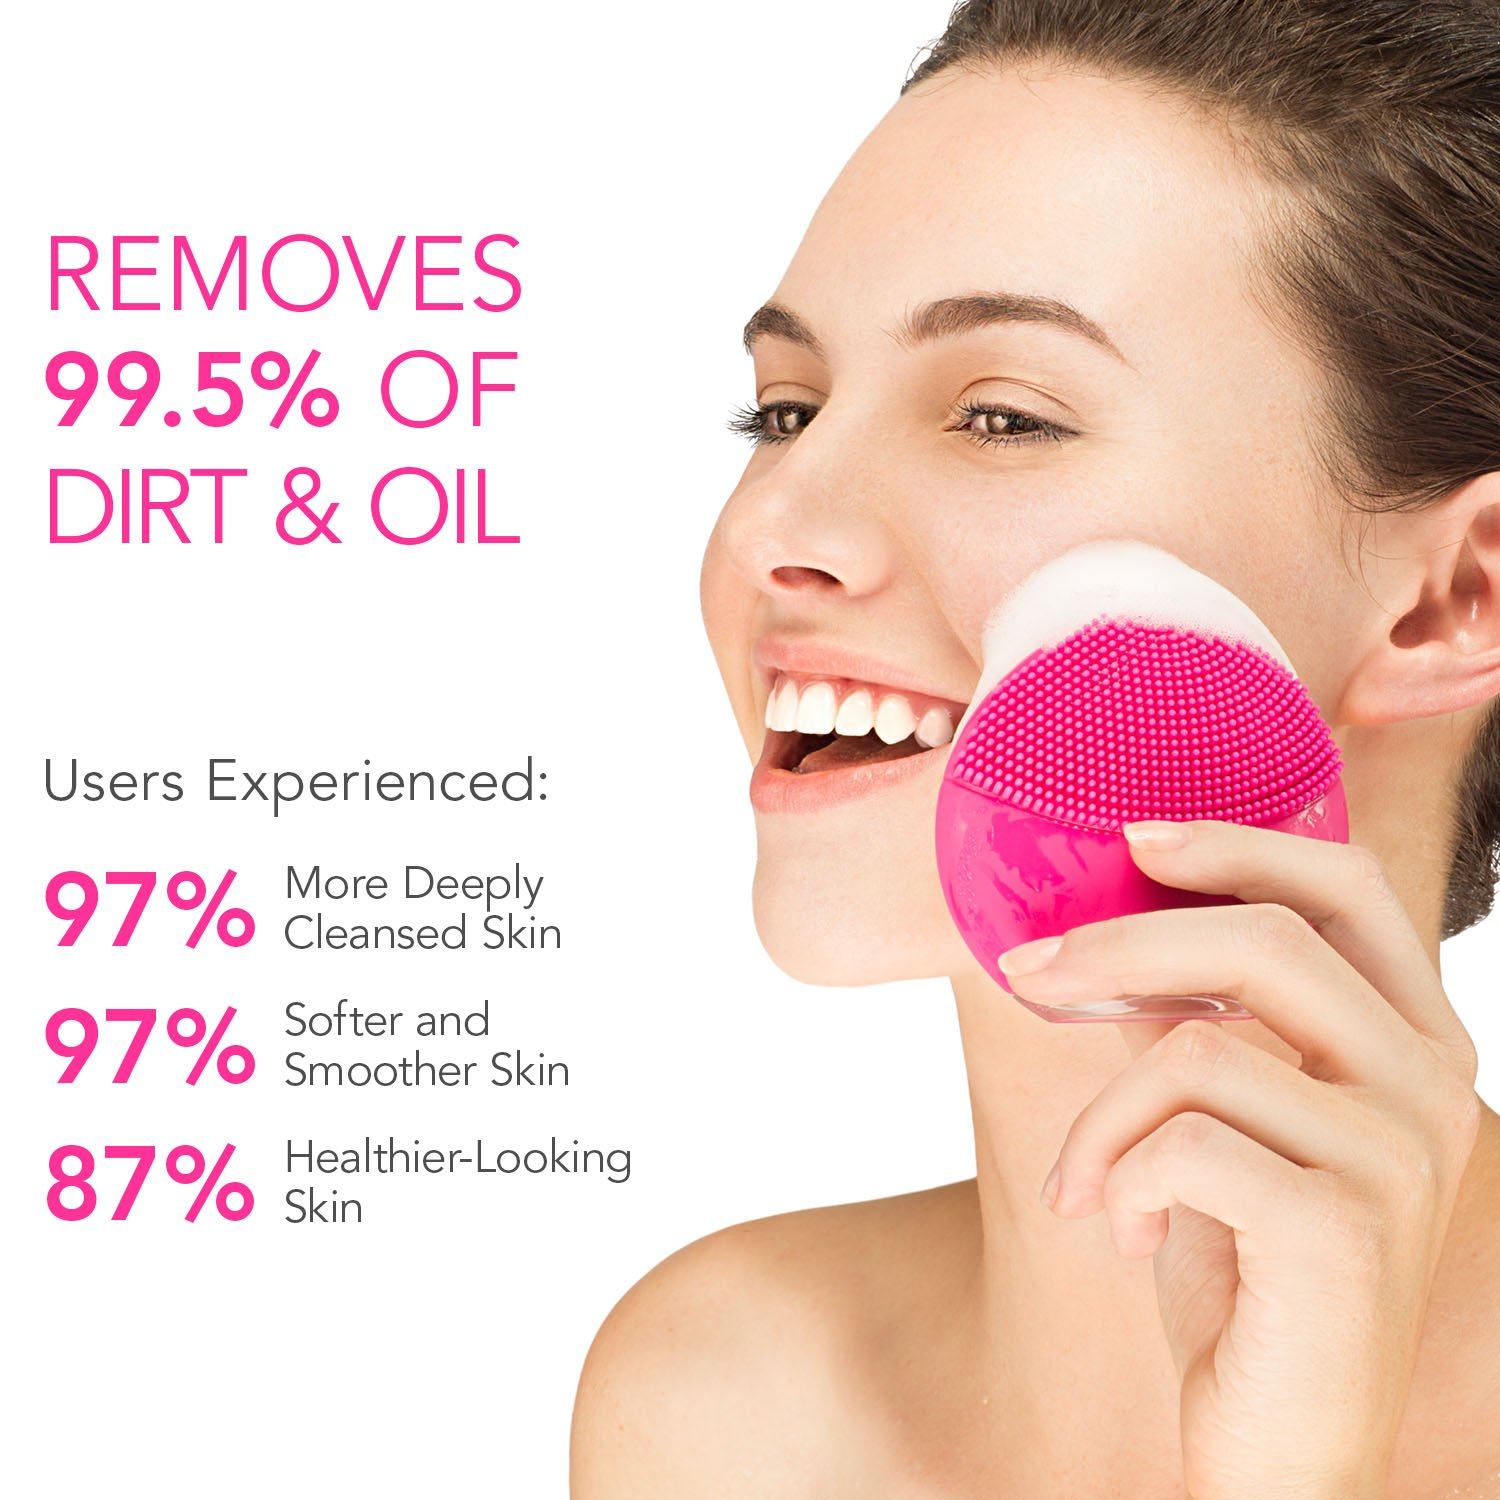 FOREO LUNA mini 2 Facial Cleansing Brush, Gentle Exfoliation and Sonic Cleansing for All Skin Types, Fuchsia by FOREO (Image #6)